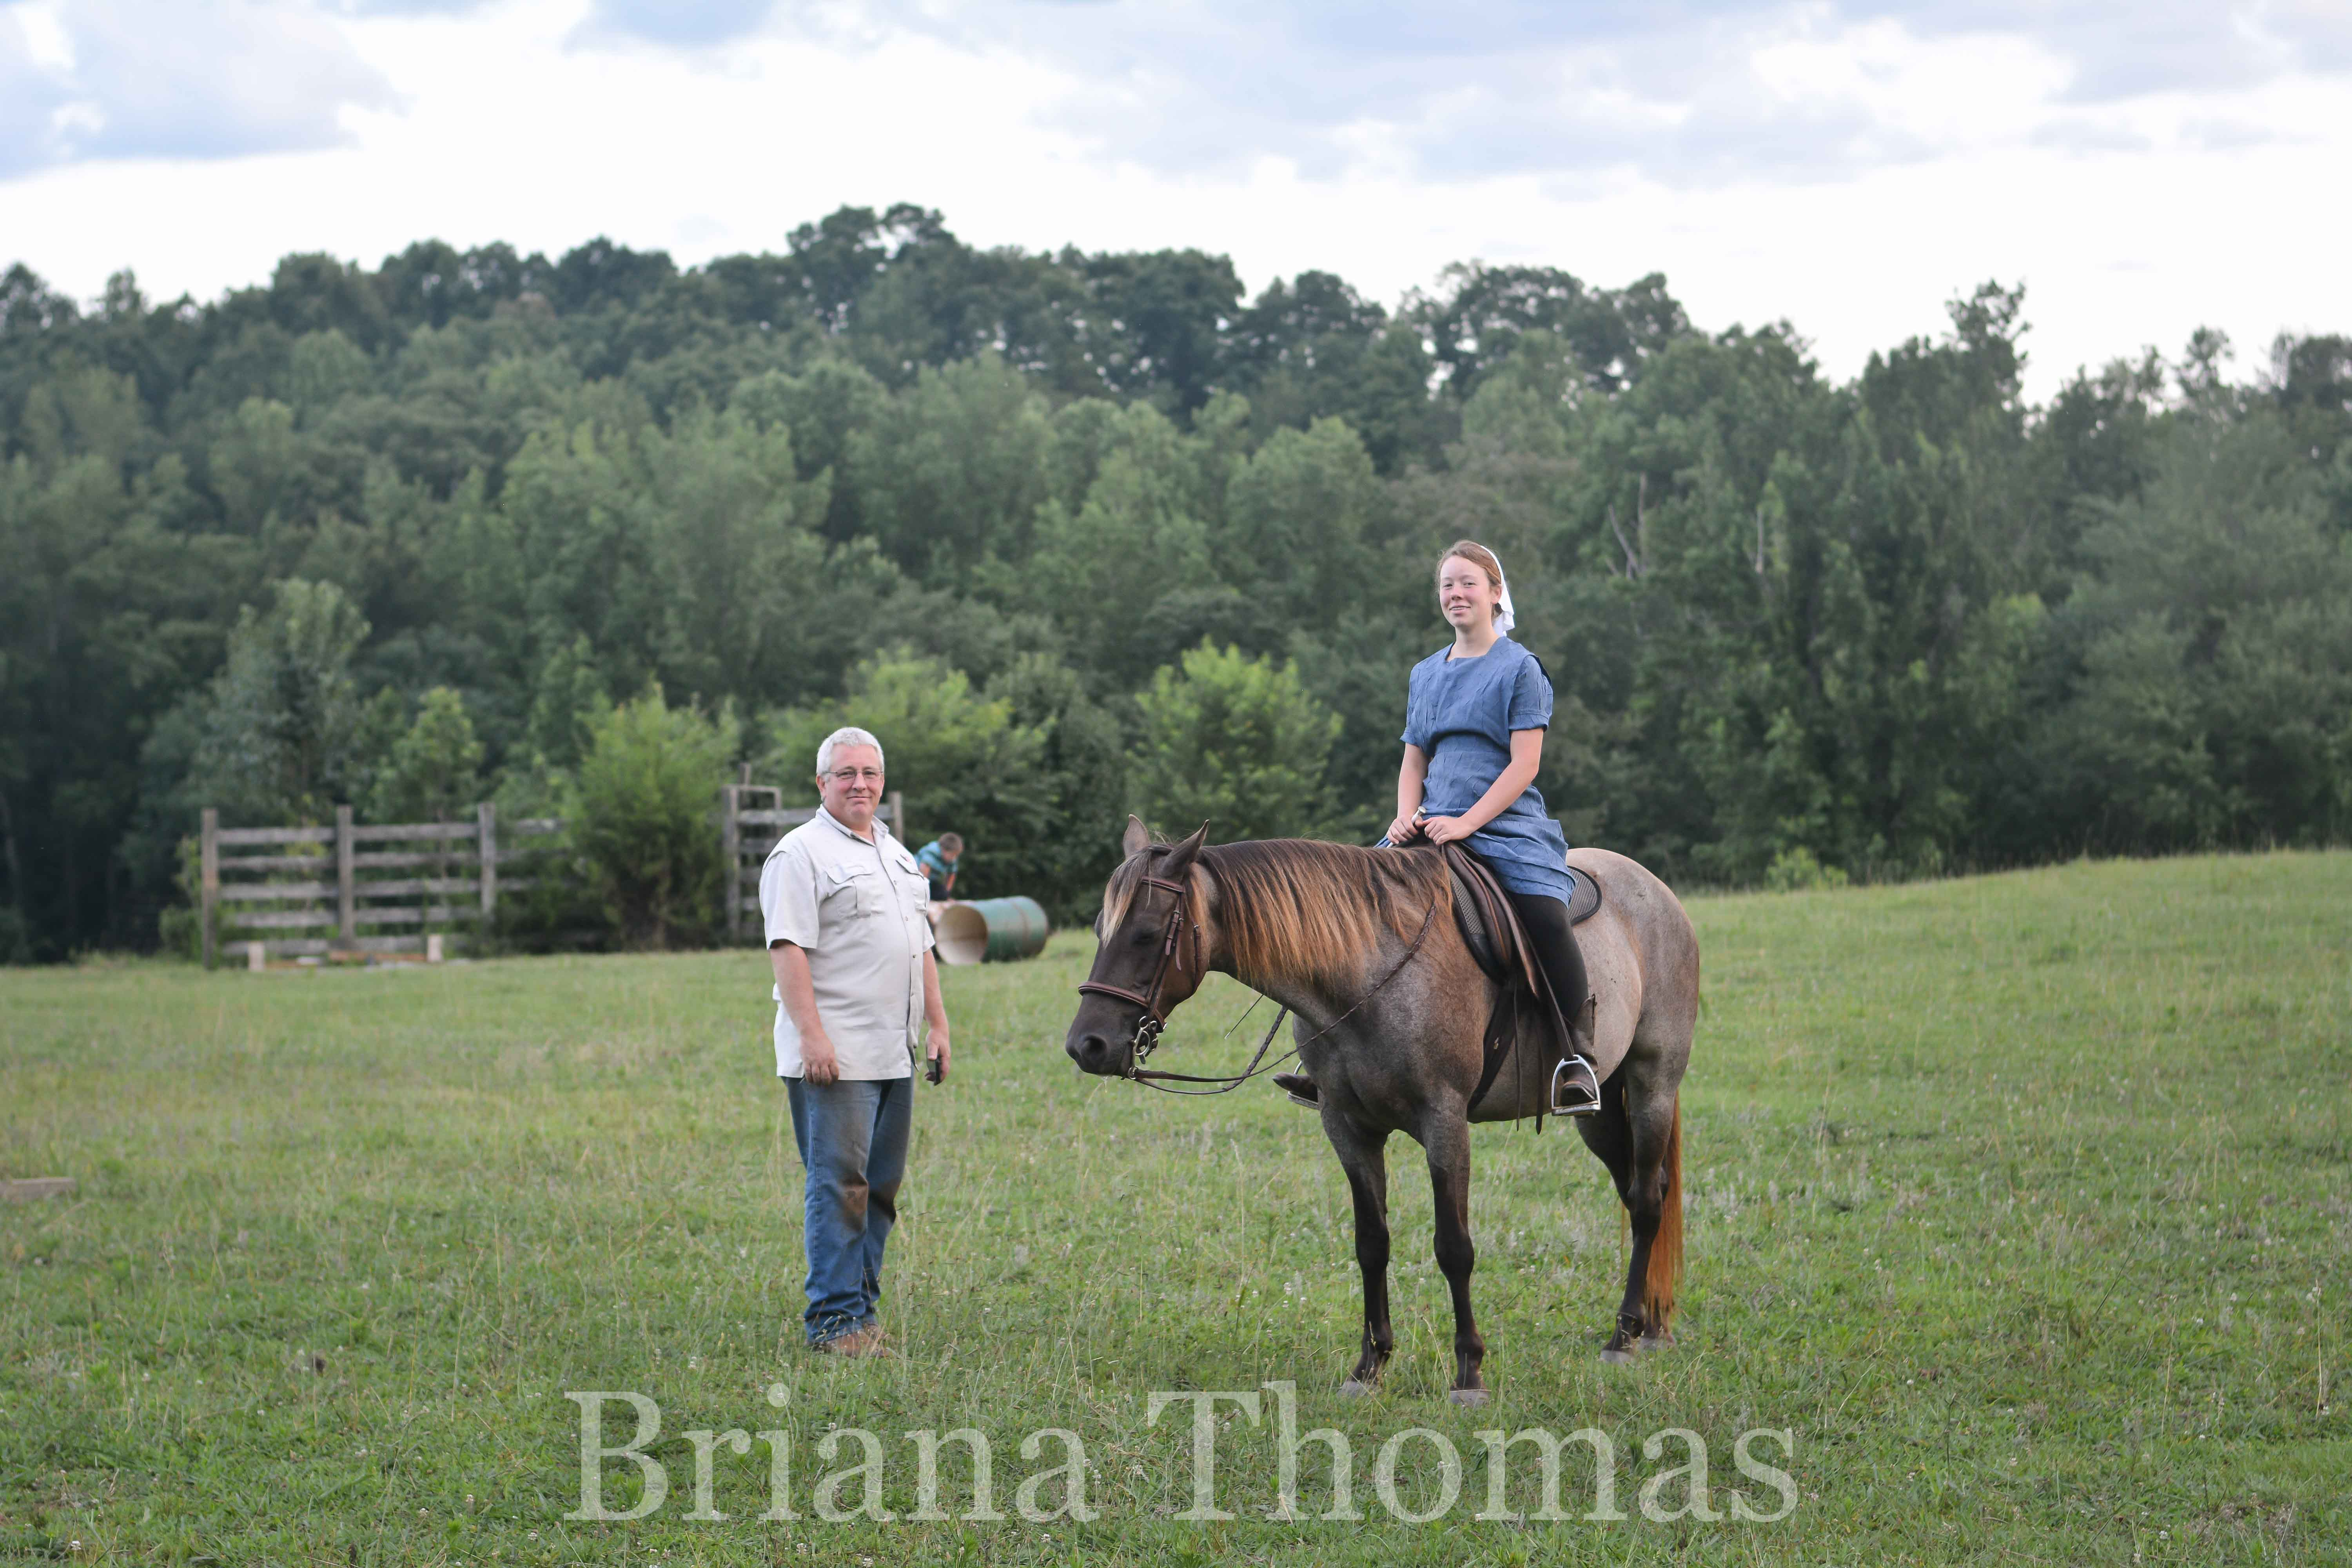 Check out this post for horses, gardens, and a few quotes! Taken in June 2017 at Halal Mountain Horses by Briana Thomas - foals, corn tassels, and more!